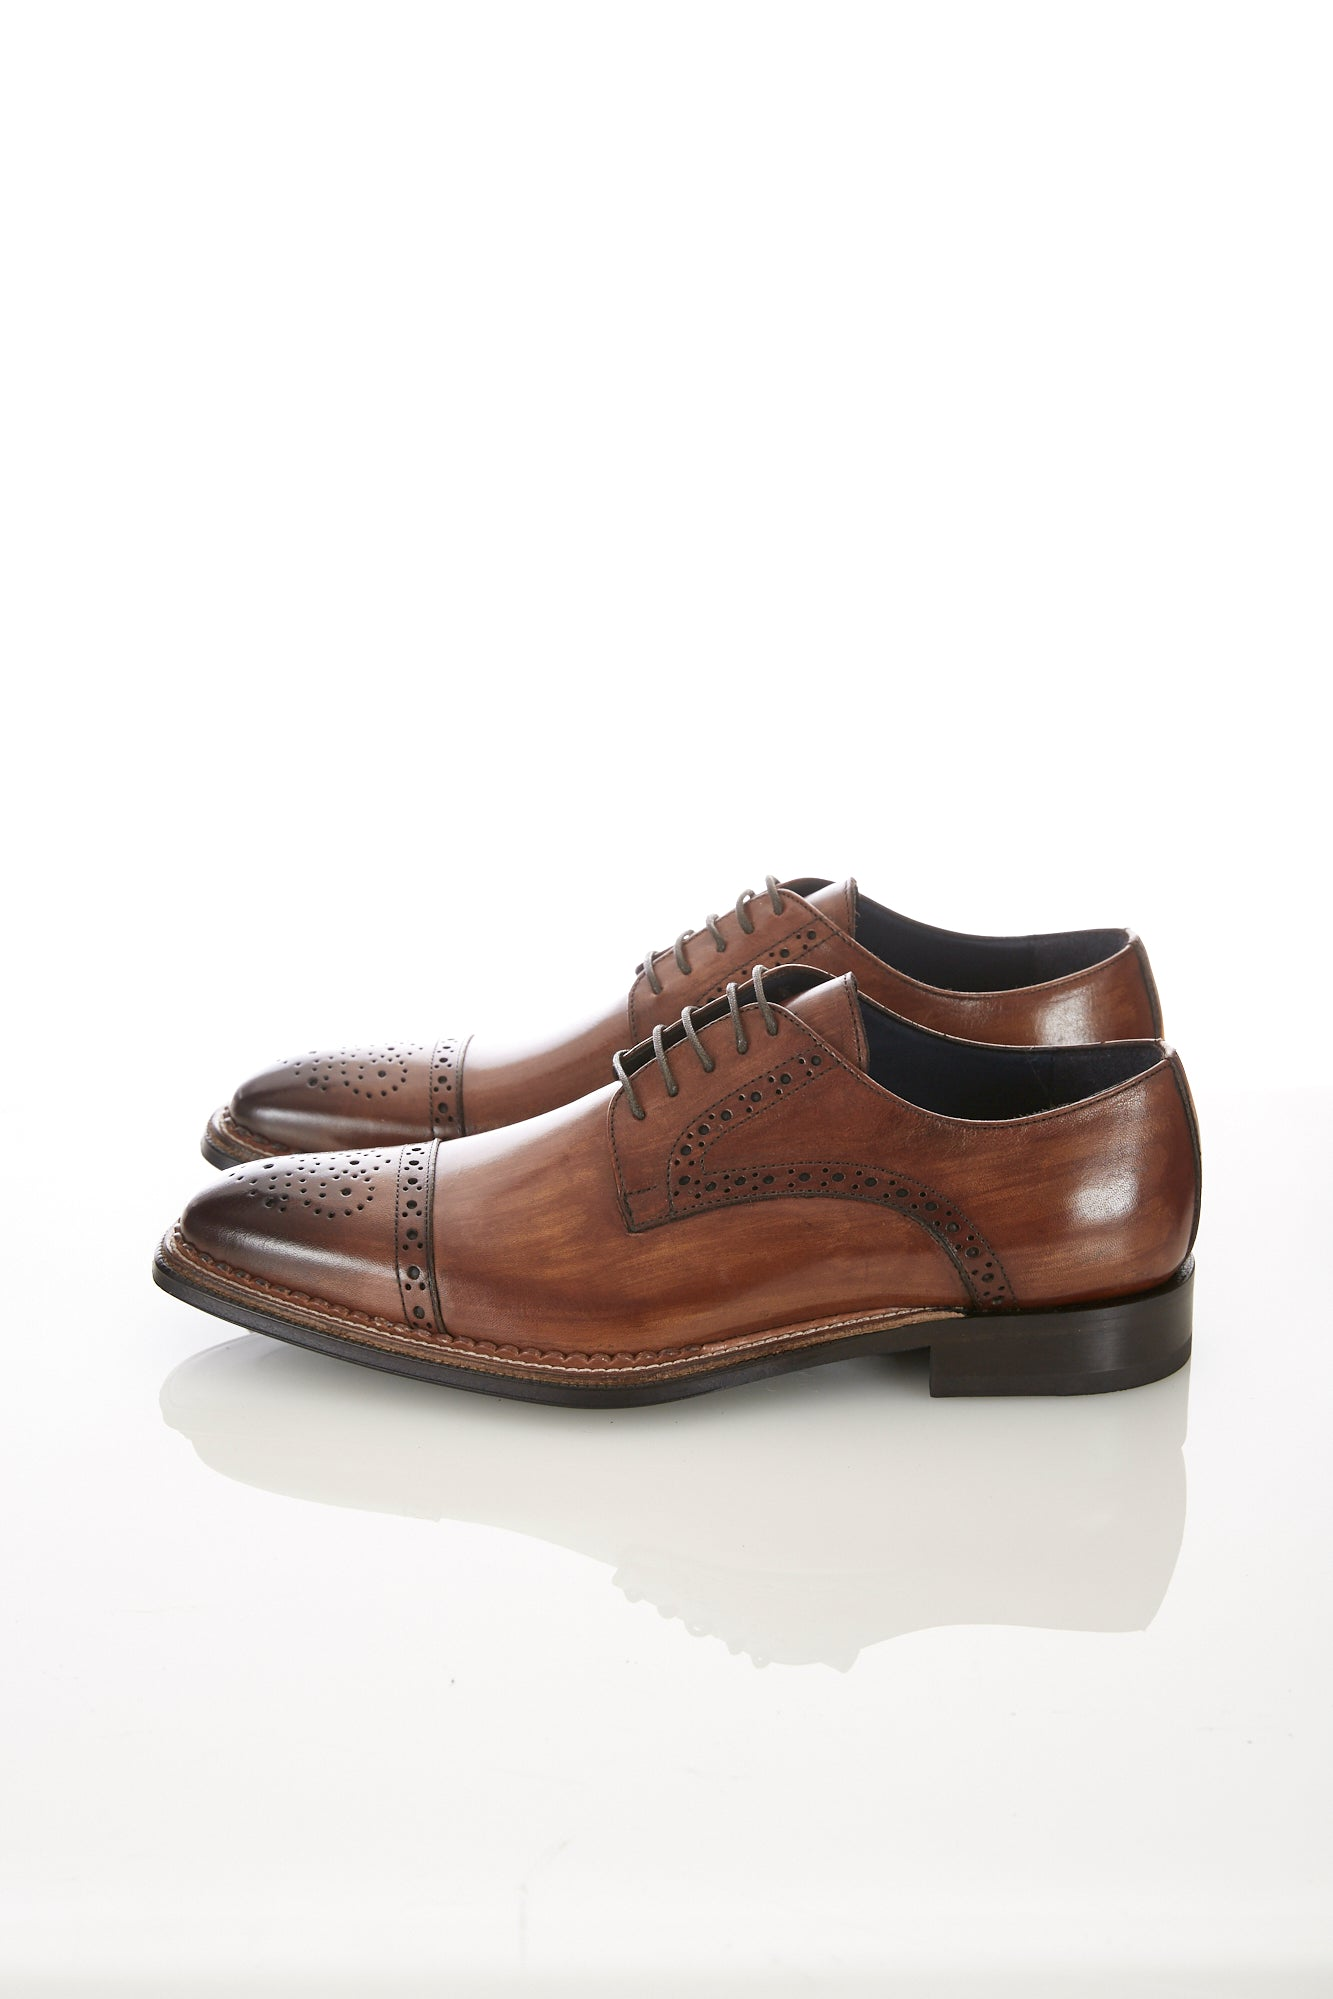 Raffaele D'Amelio Brown Medallion Cap Toe Shoe Side